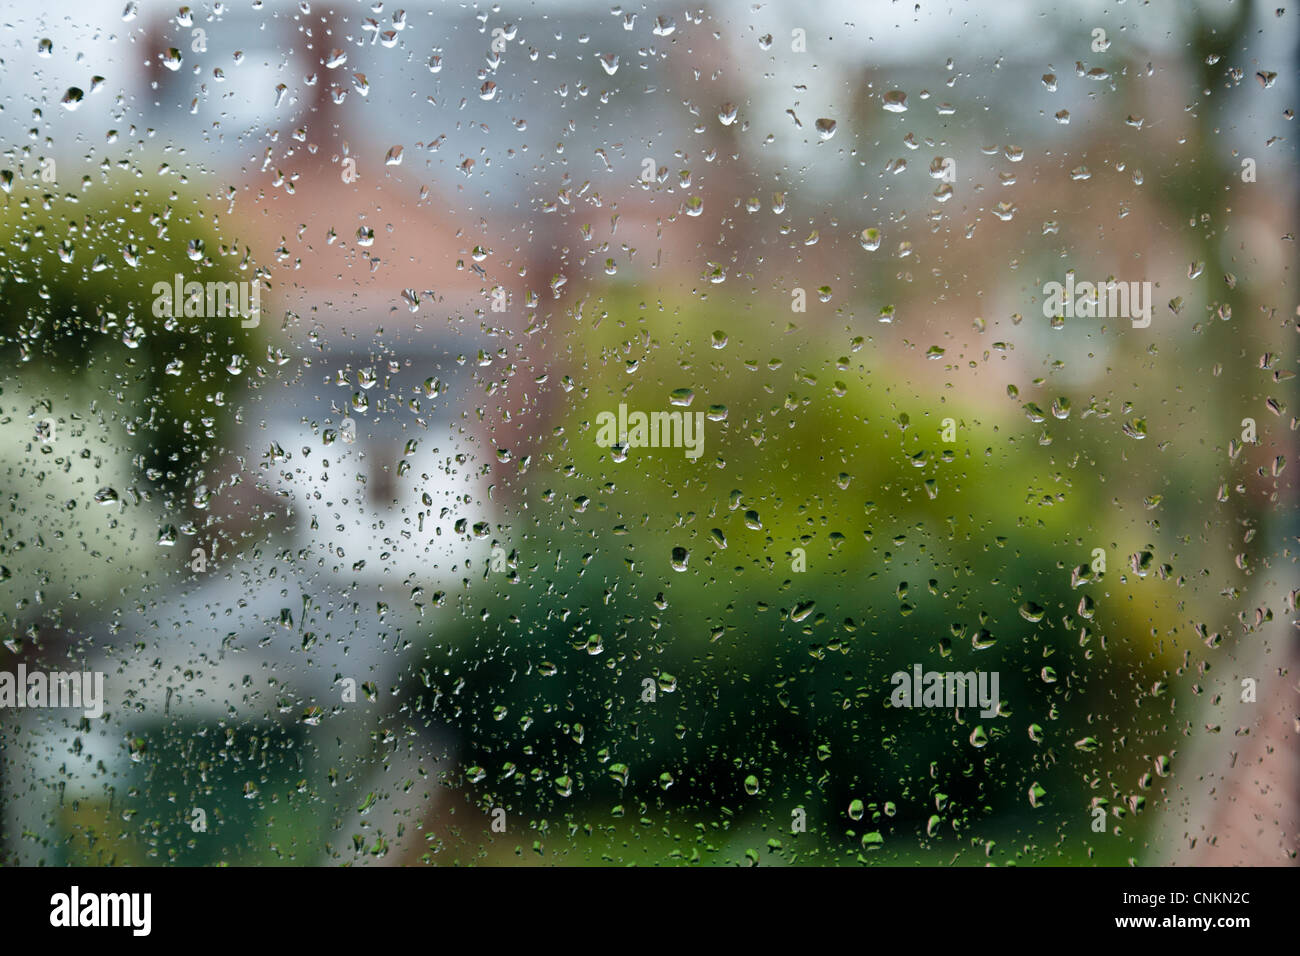 Rainy day. Raindrops on a window with the distance out of focus, England, UK - Stock Image